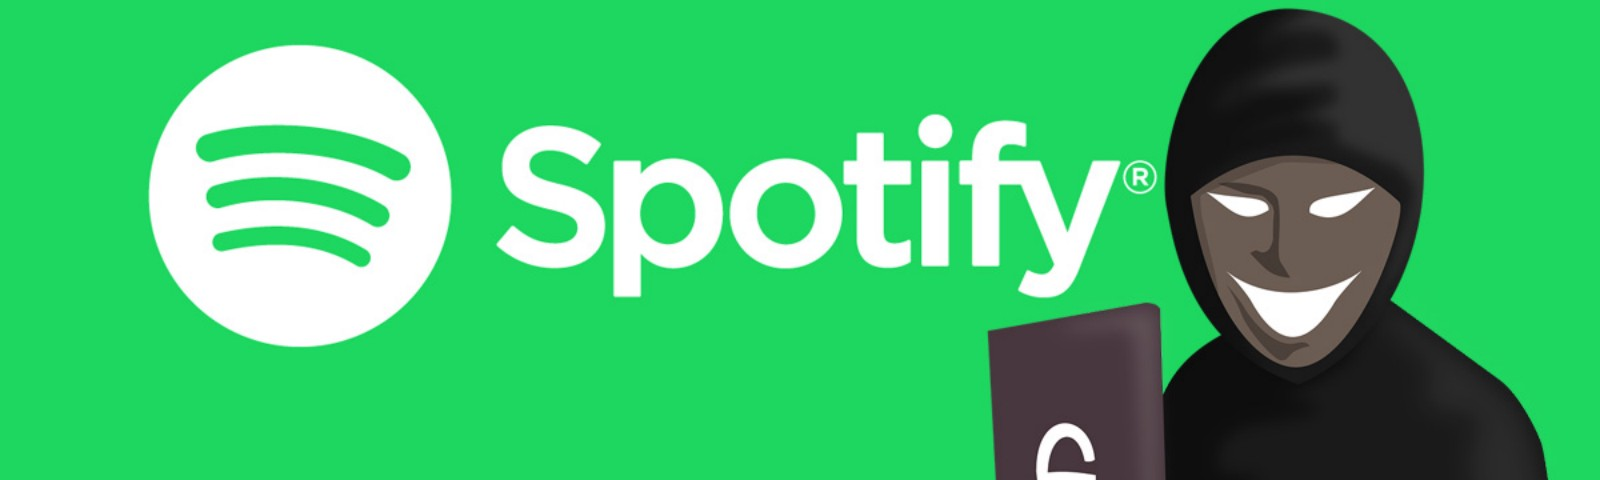 Spotify logo and wordmark with an image of a grinning hacker using a laptop